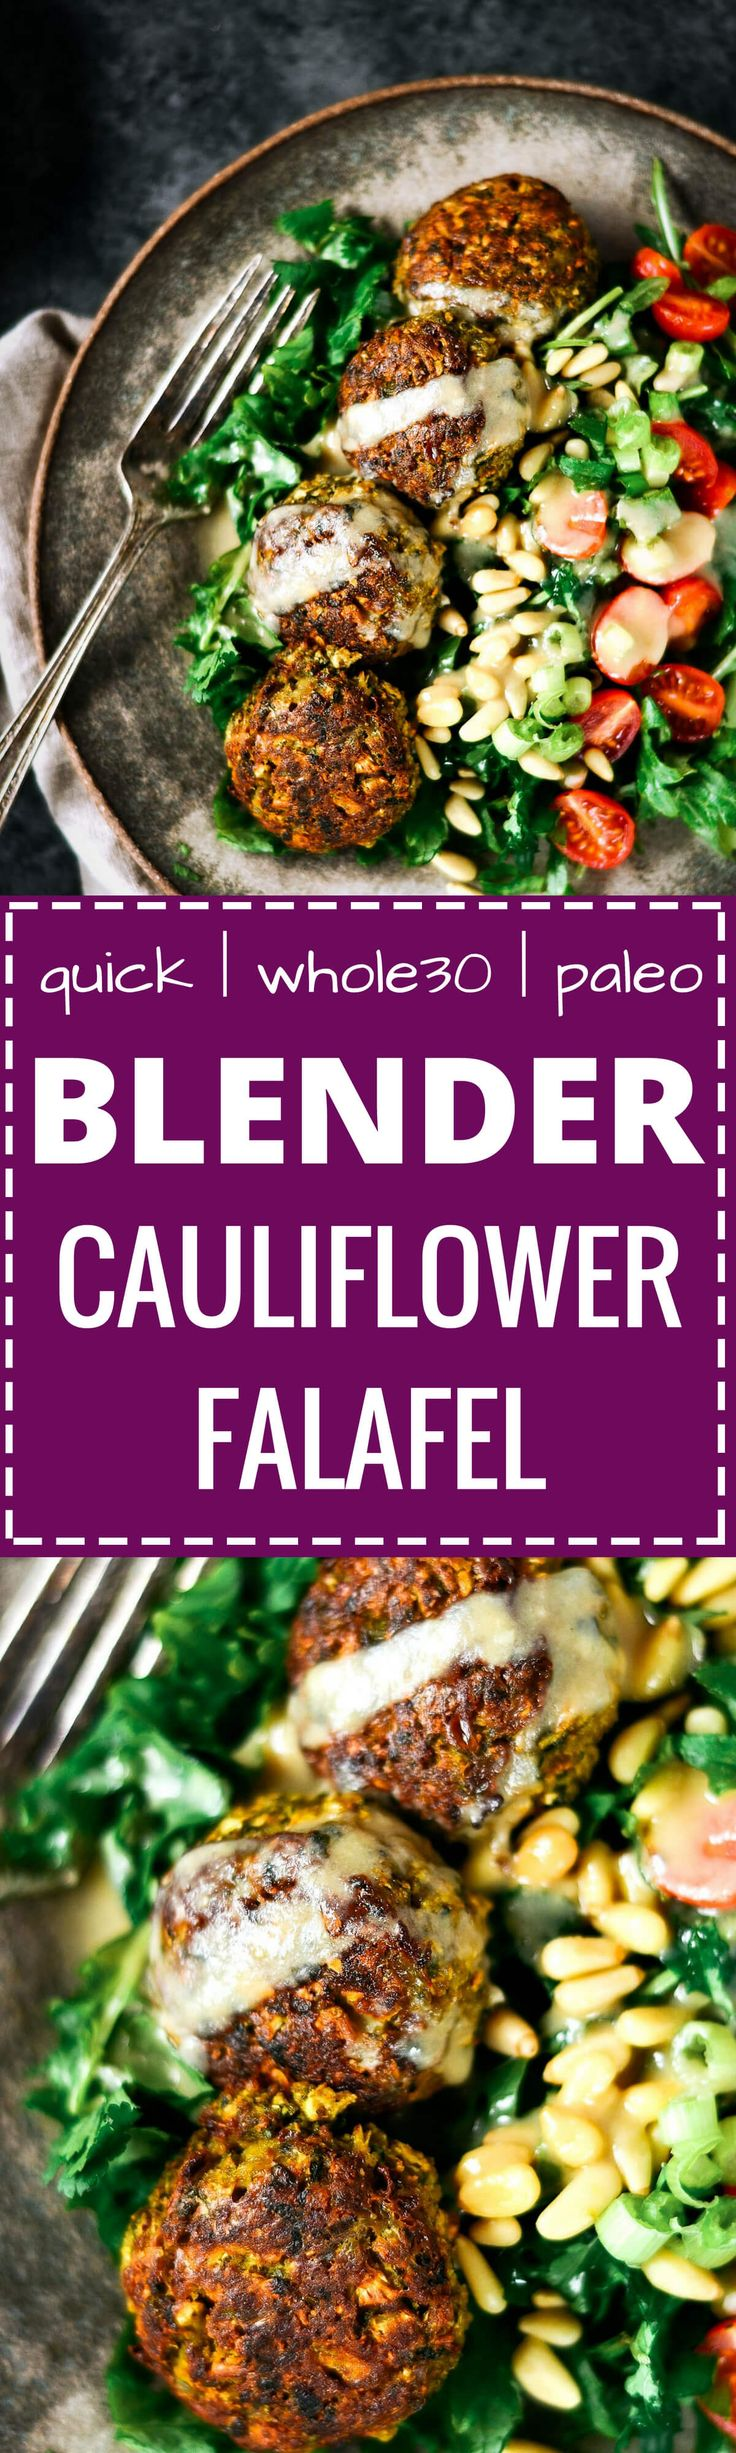 These warm flavorful falafels. A low carb delicious whole30 meal that is easily made in a blender.